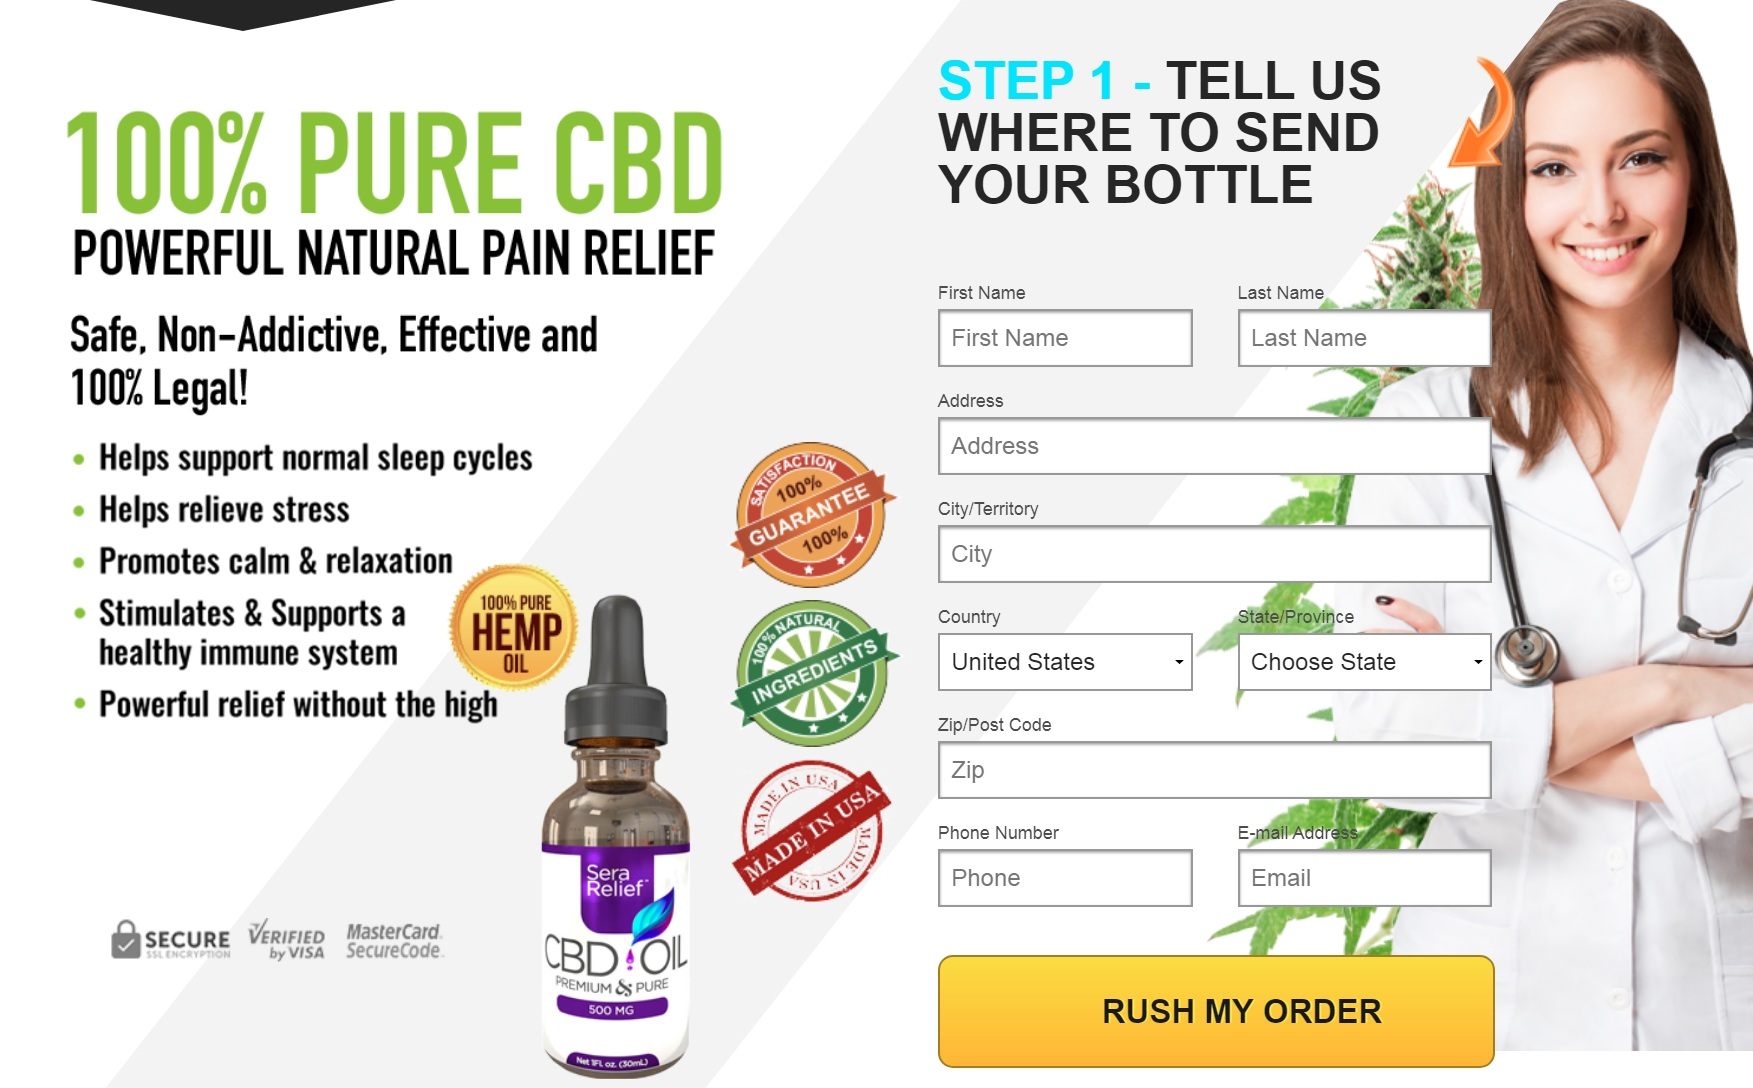 SeraRelief CBD Oil